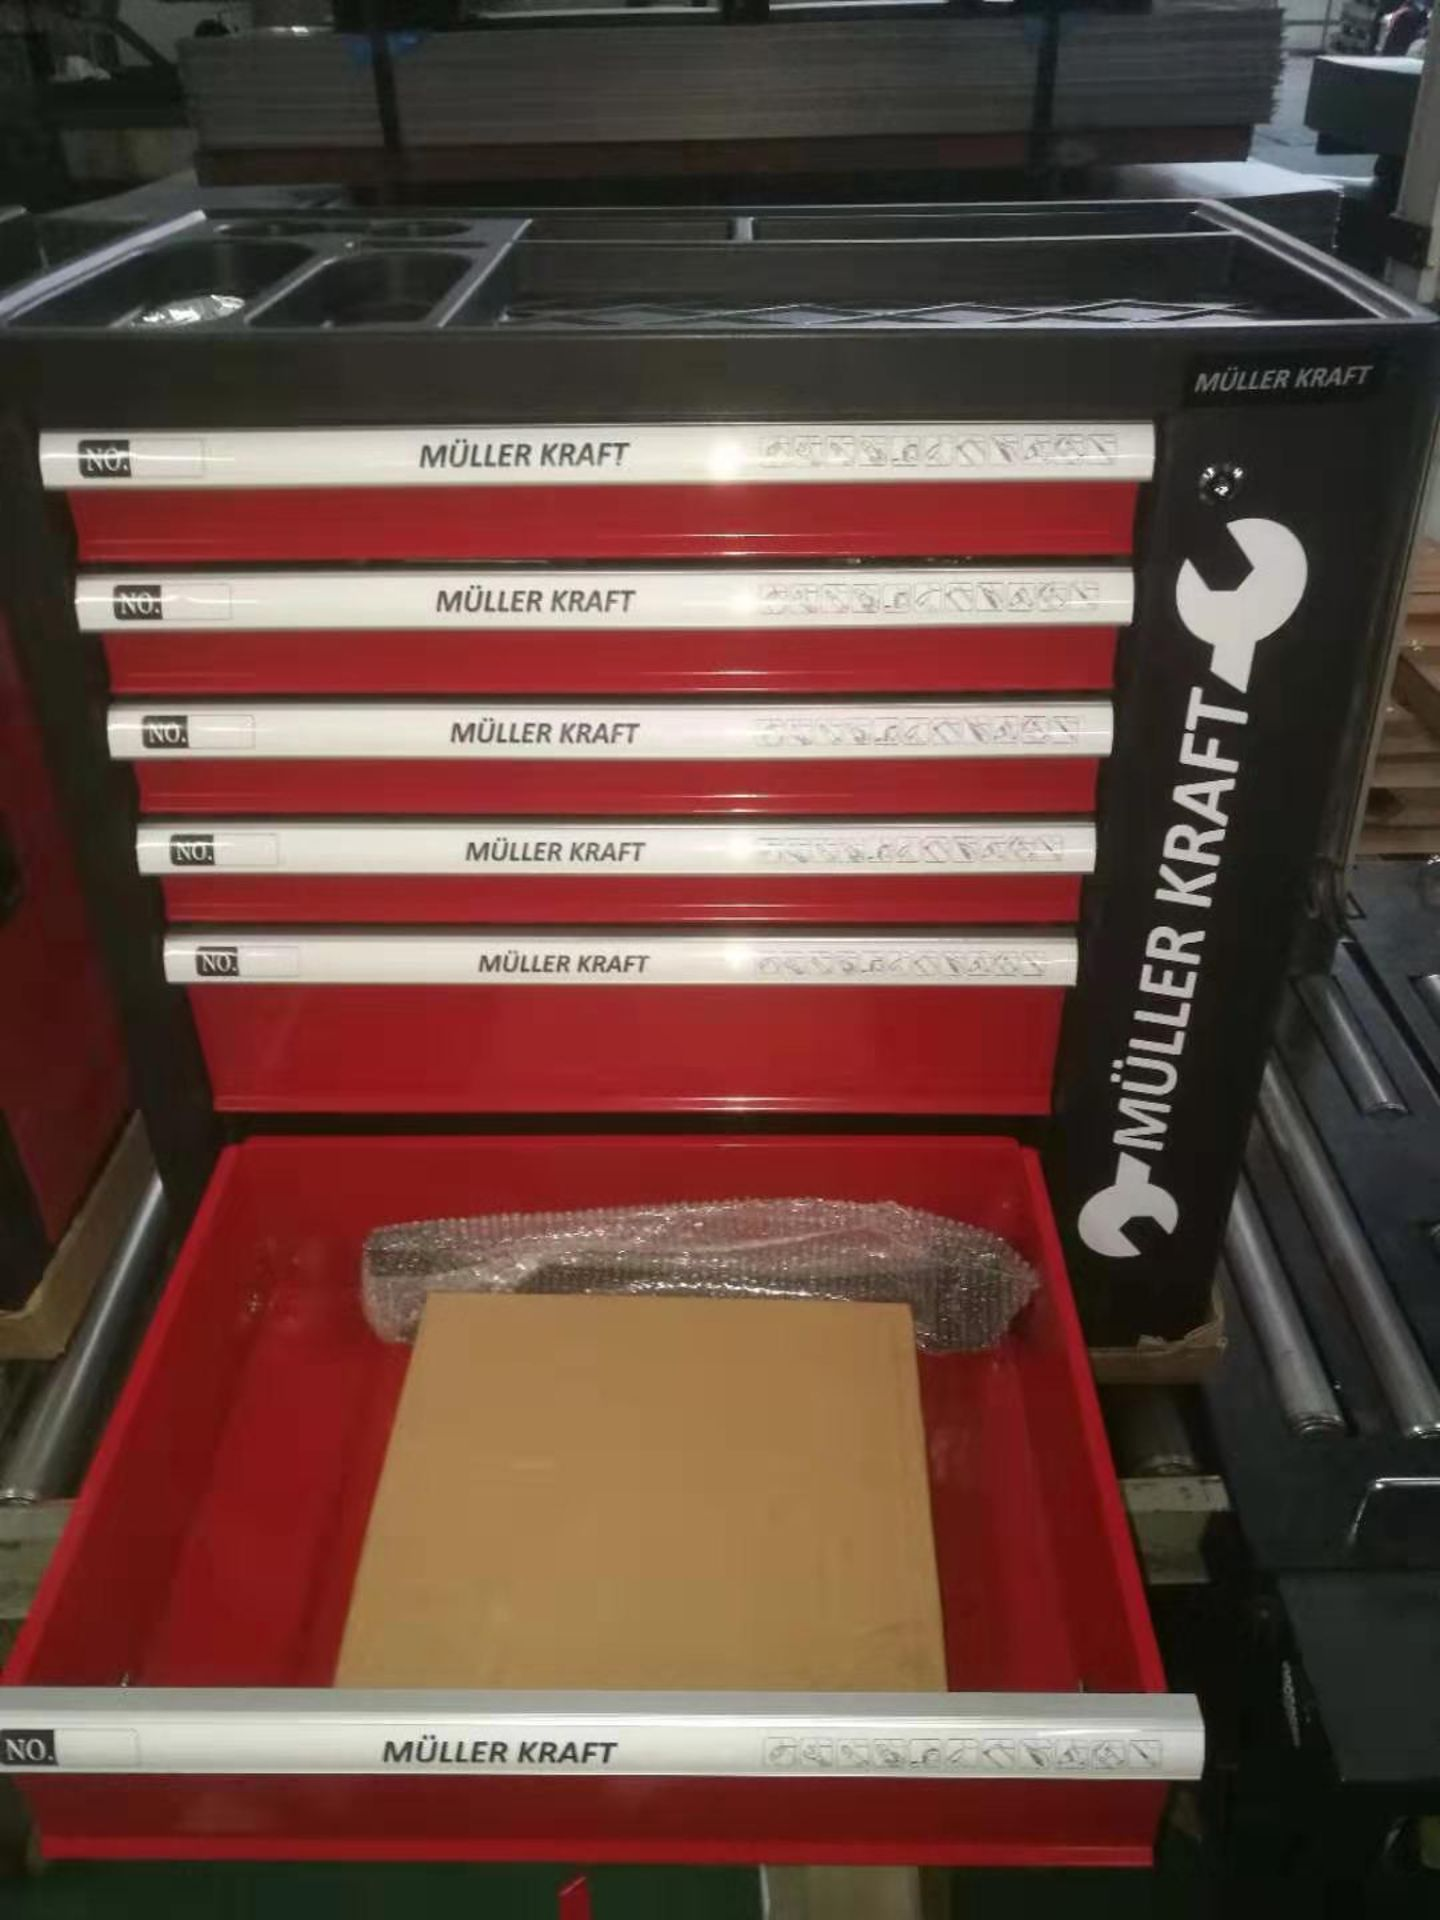 + VAT Brand New Locking Garage Tool Cabinet With Six Drawers And Side Door On Lockable Casters - - Image 6 of 7